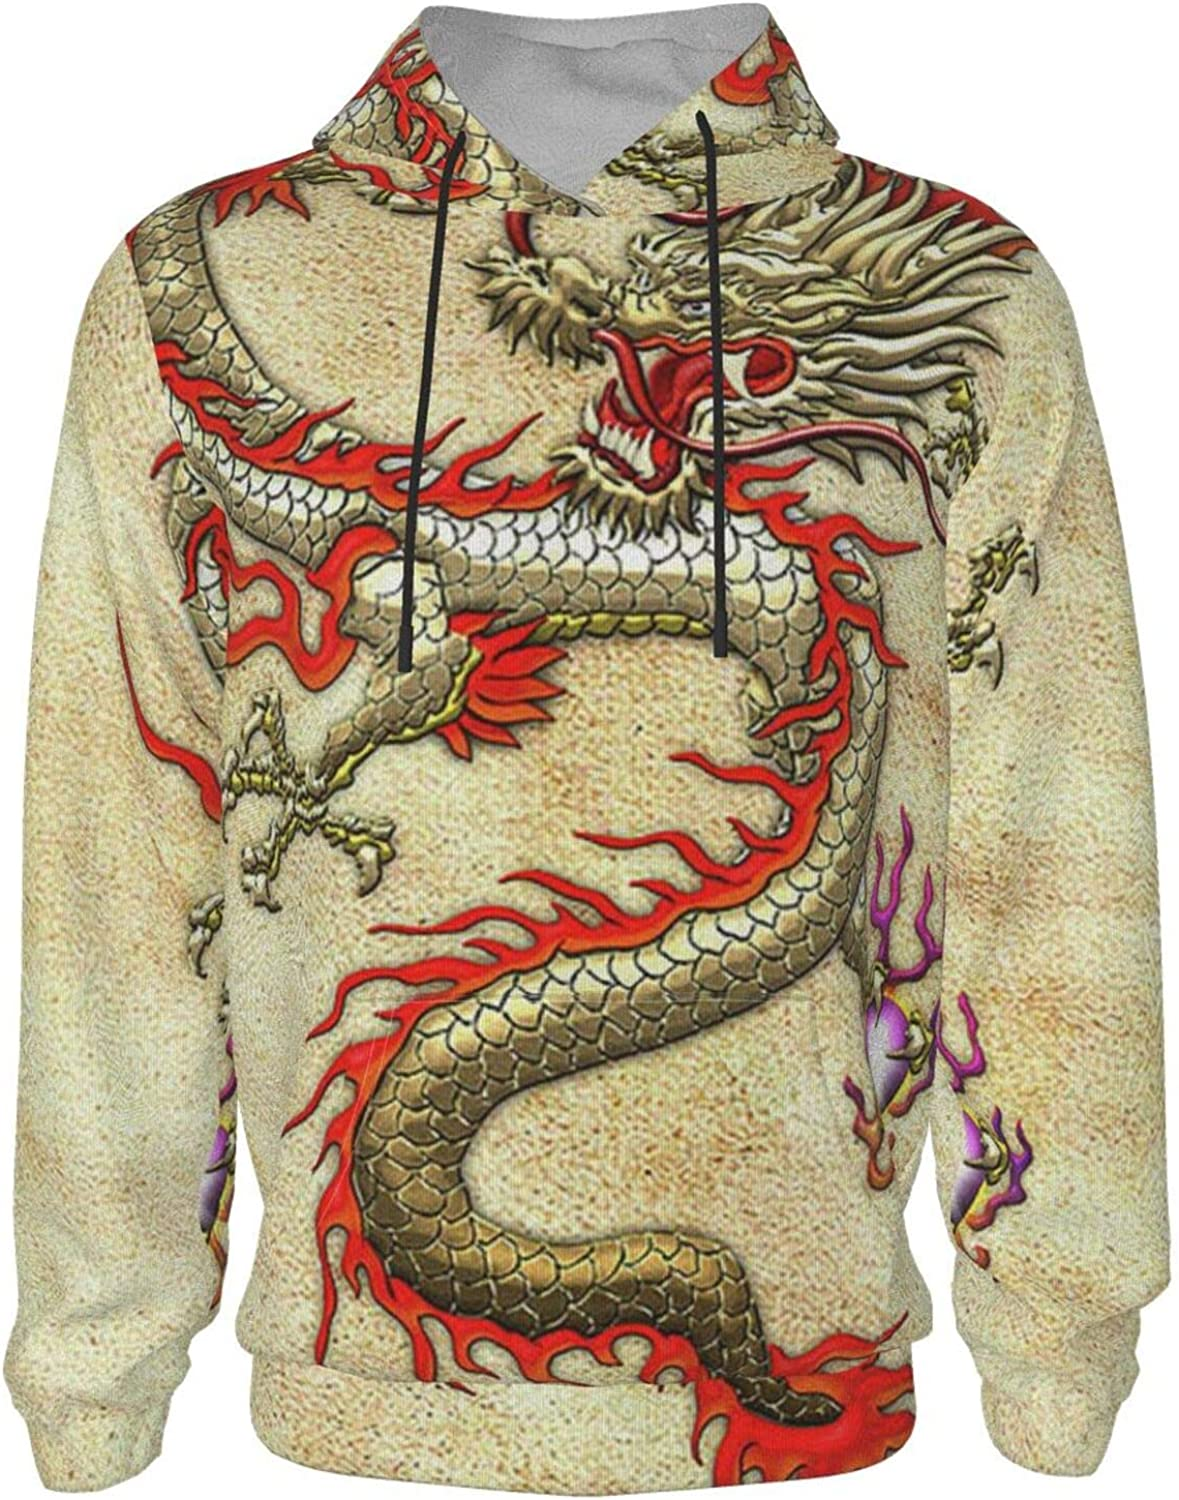 xqqr Hoodies Outlet ☆ Free Shipping for Boys Girls Chinese 3D Fashionable Pullover Dragon Ho Golden